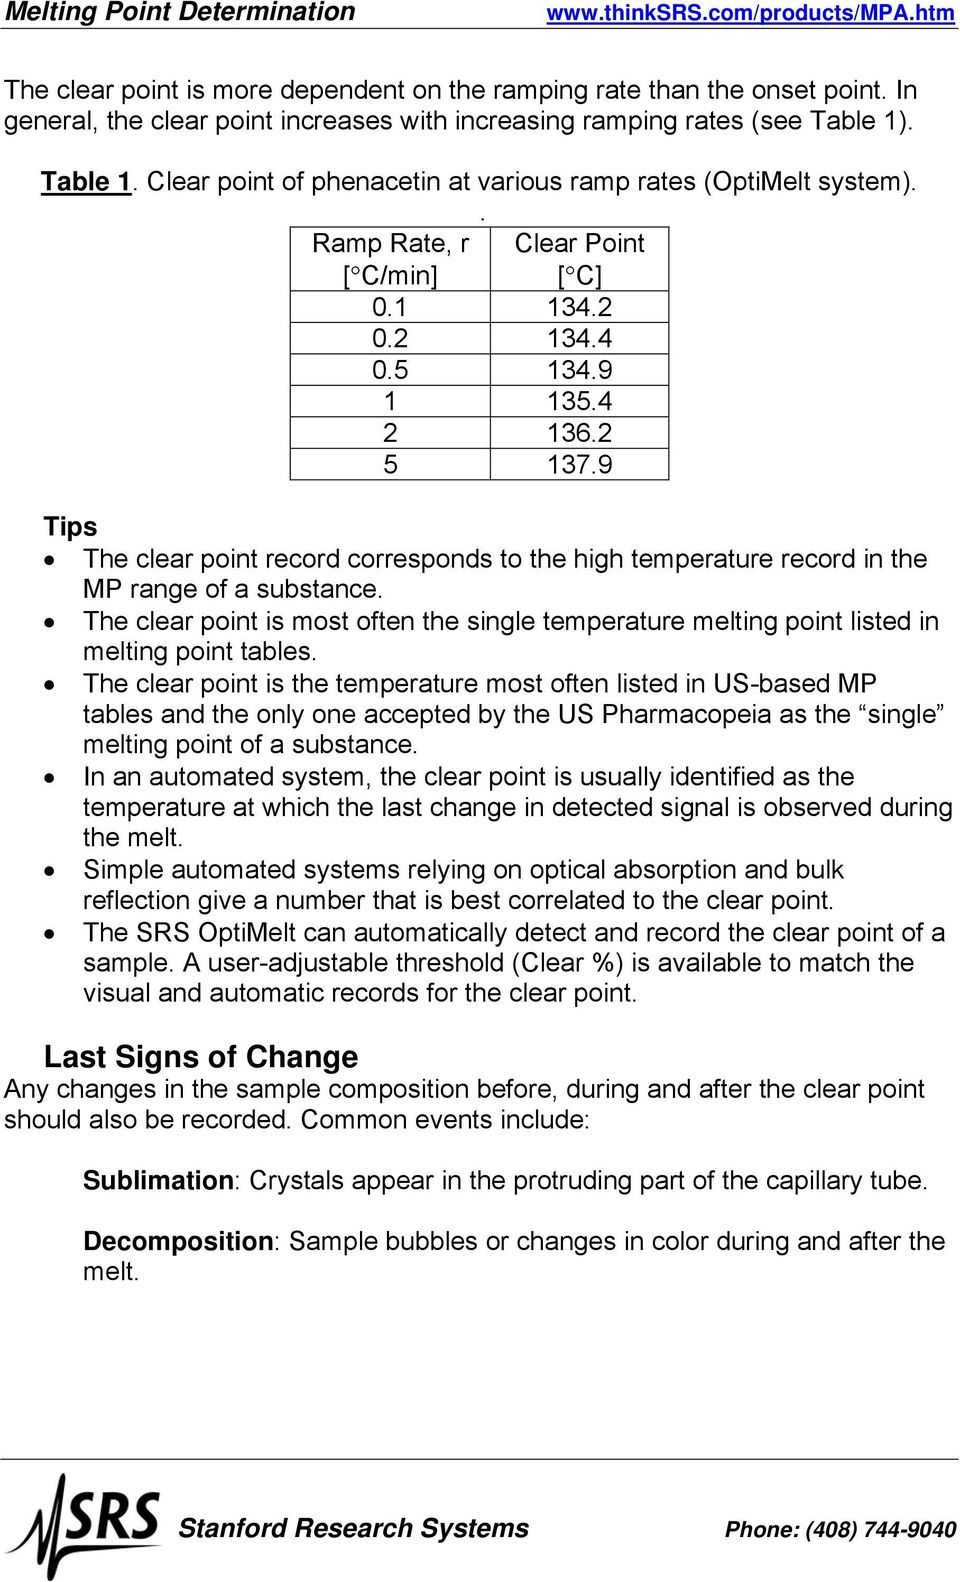 9 The clear point record corresponds to the high temperature record in the MP range of a substance. The clear point is most often the single temperature melting point listed in melting point tables.